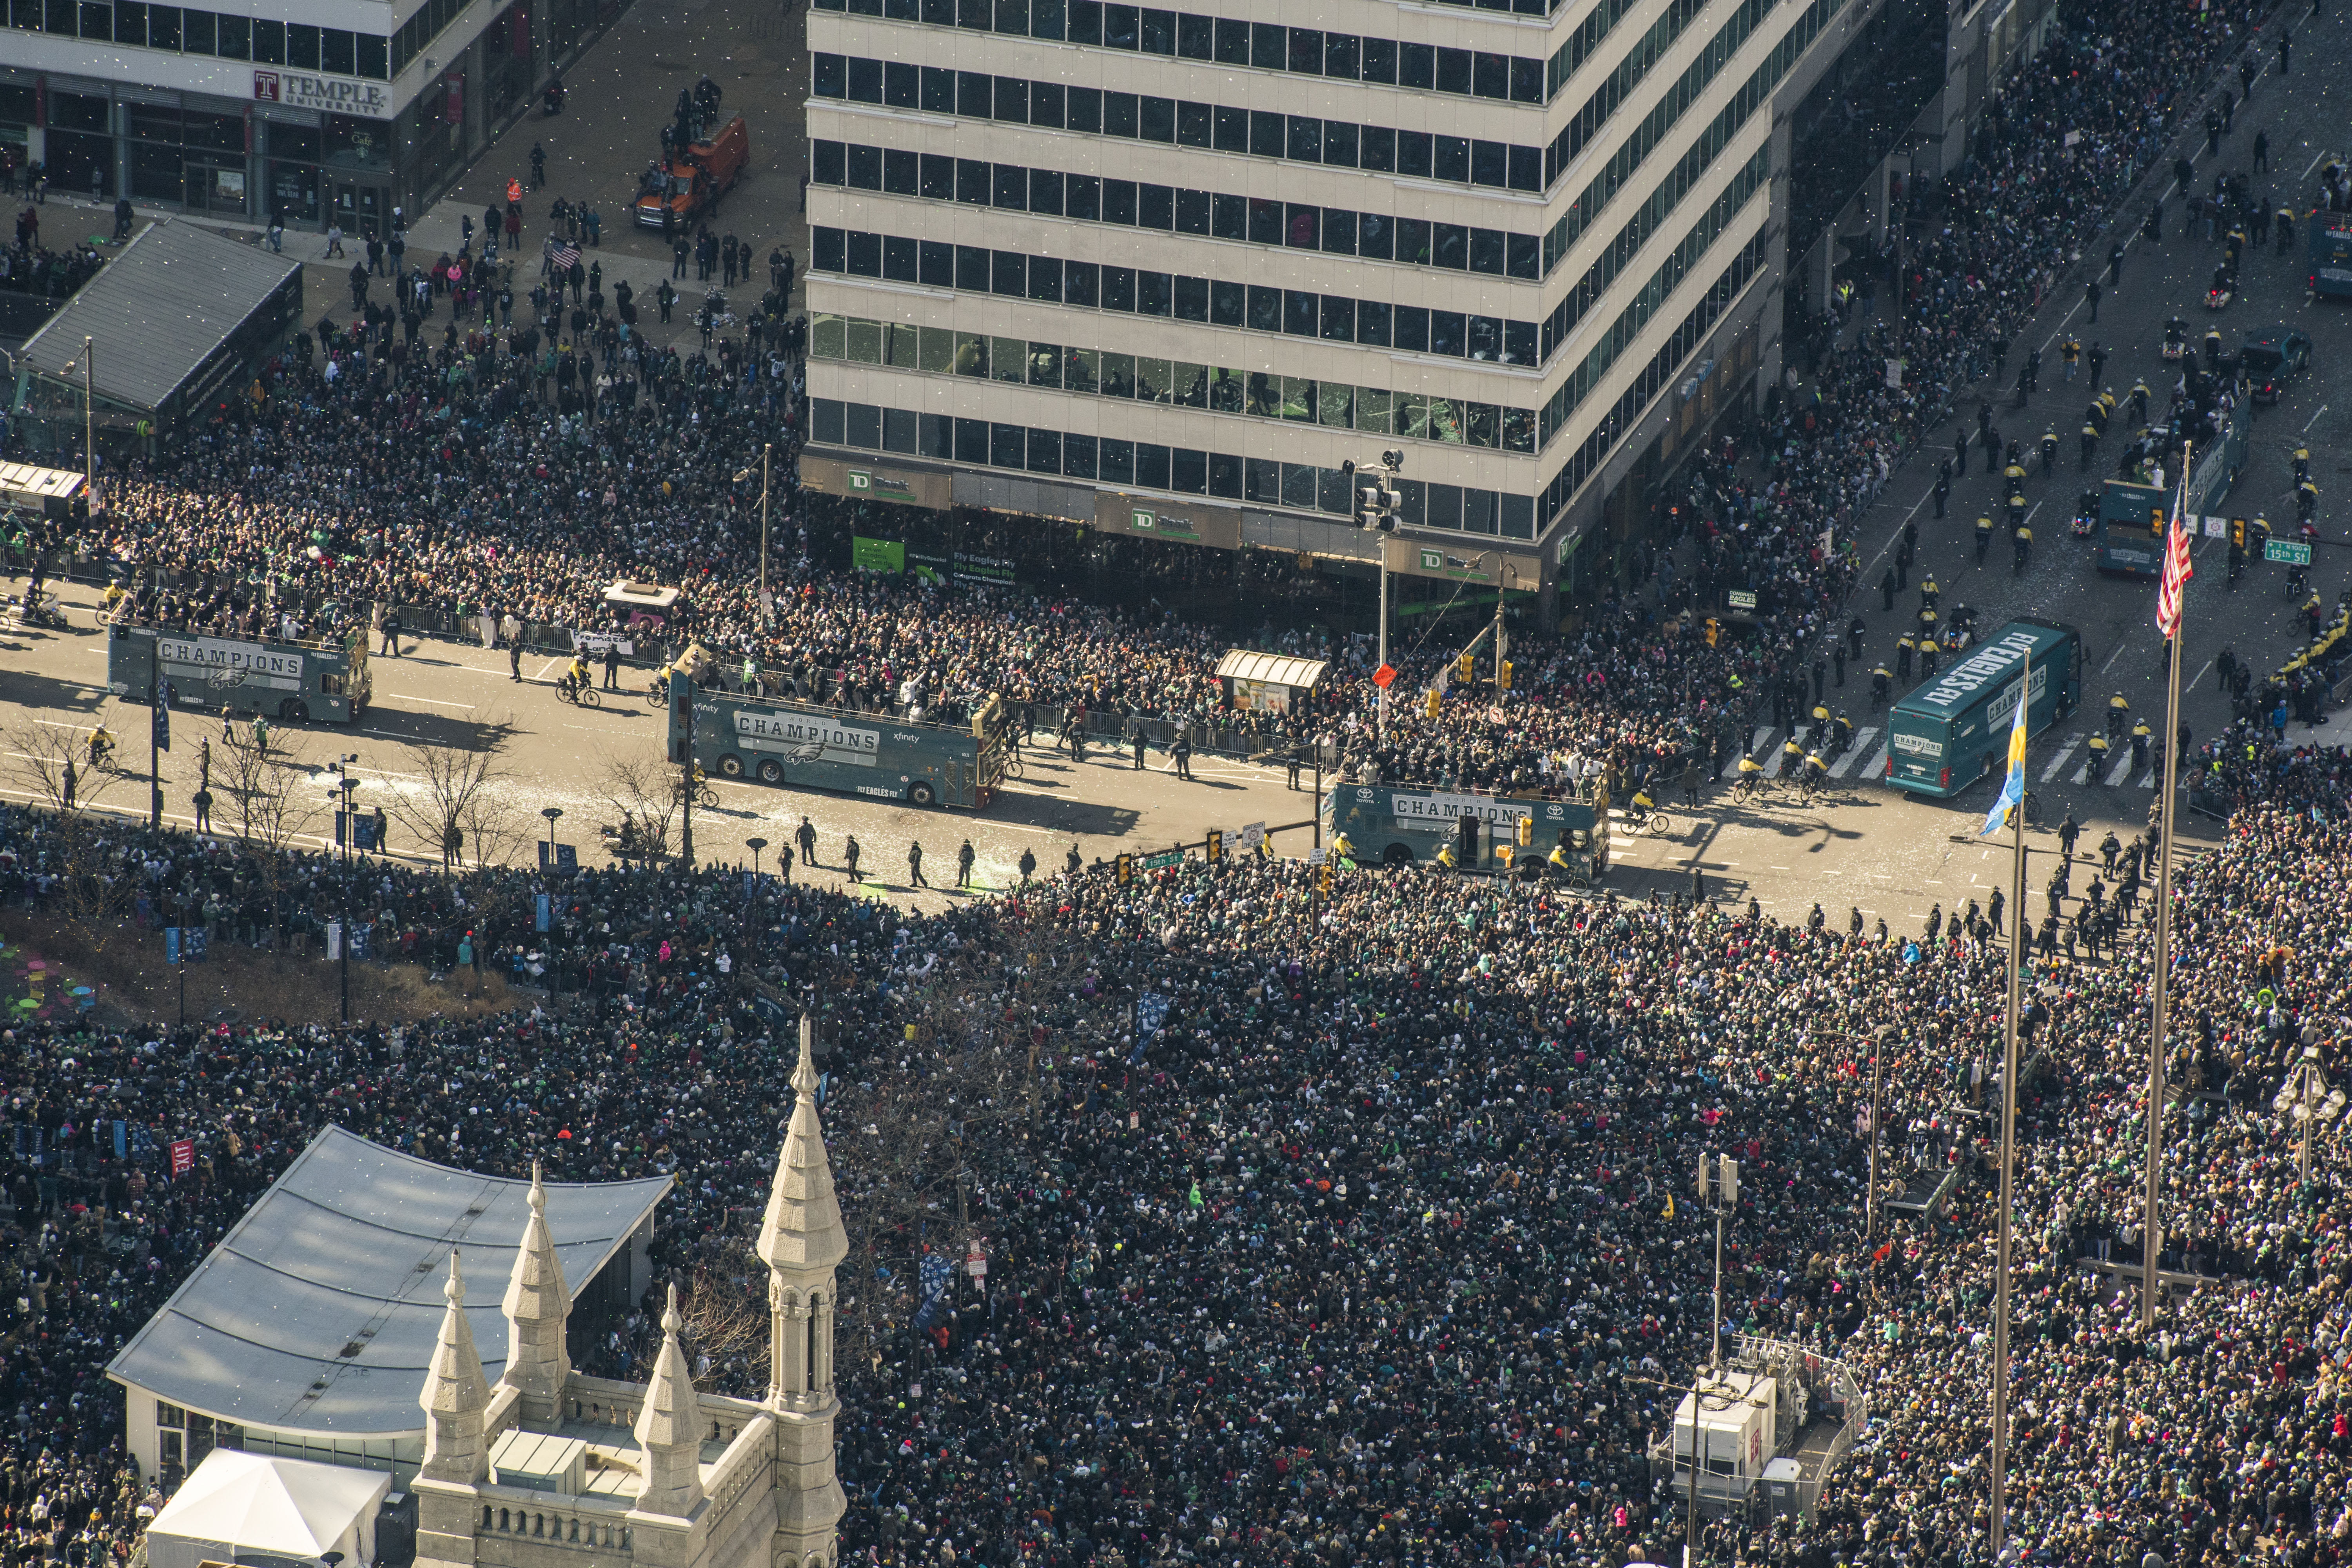 The Eagles parade takes over Philly, in photos